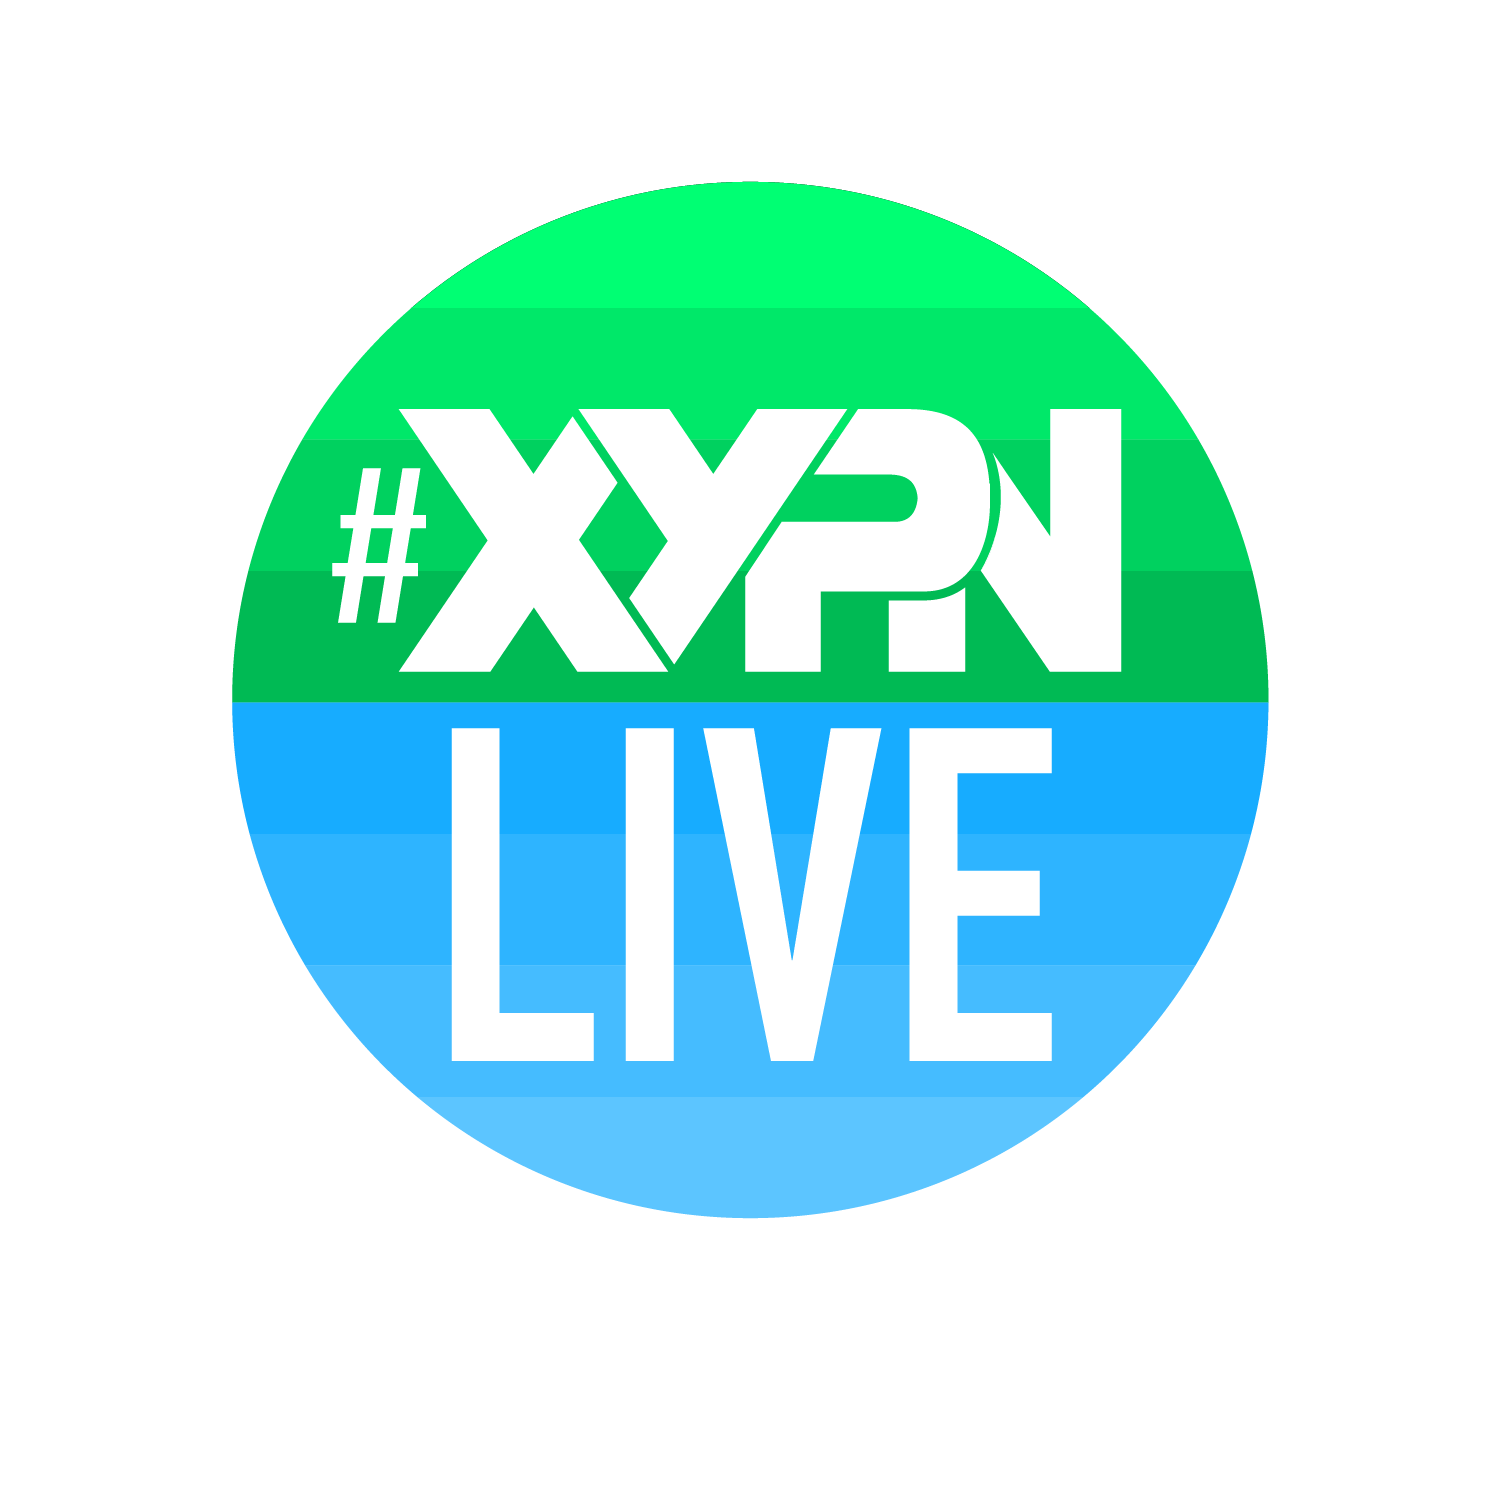 xypn_LIVE_19.png